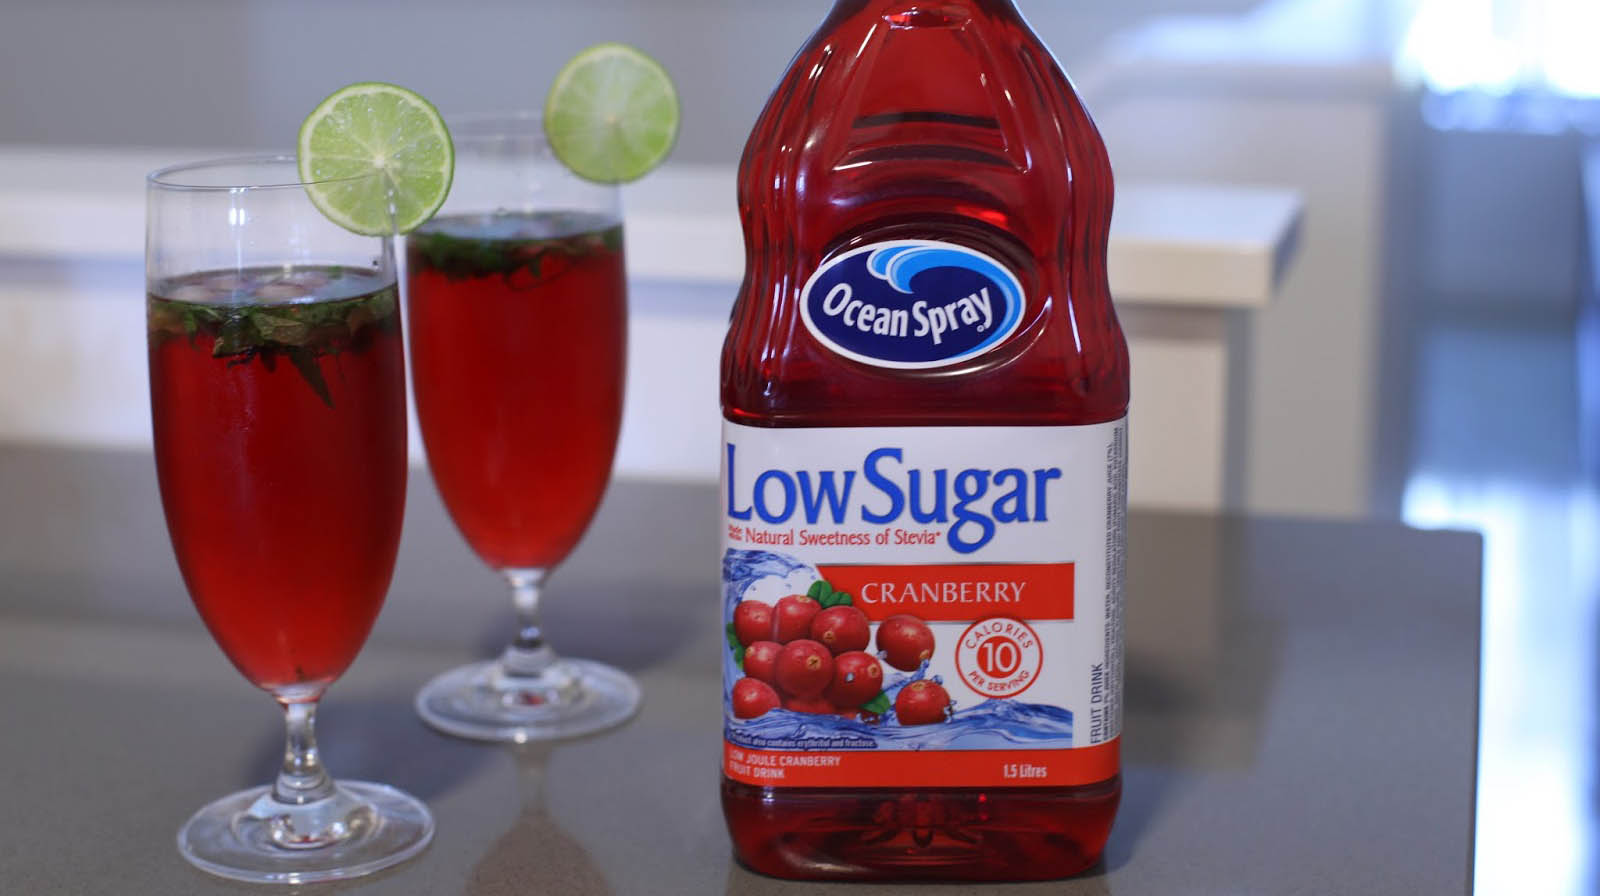 ​Indo-Canadian Ocean Spray eyes huge Indian market for its product